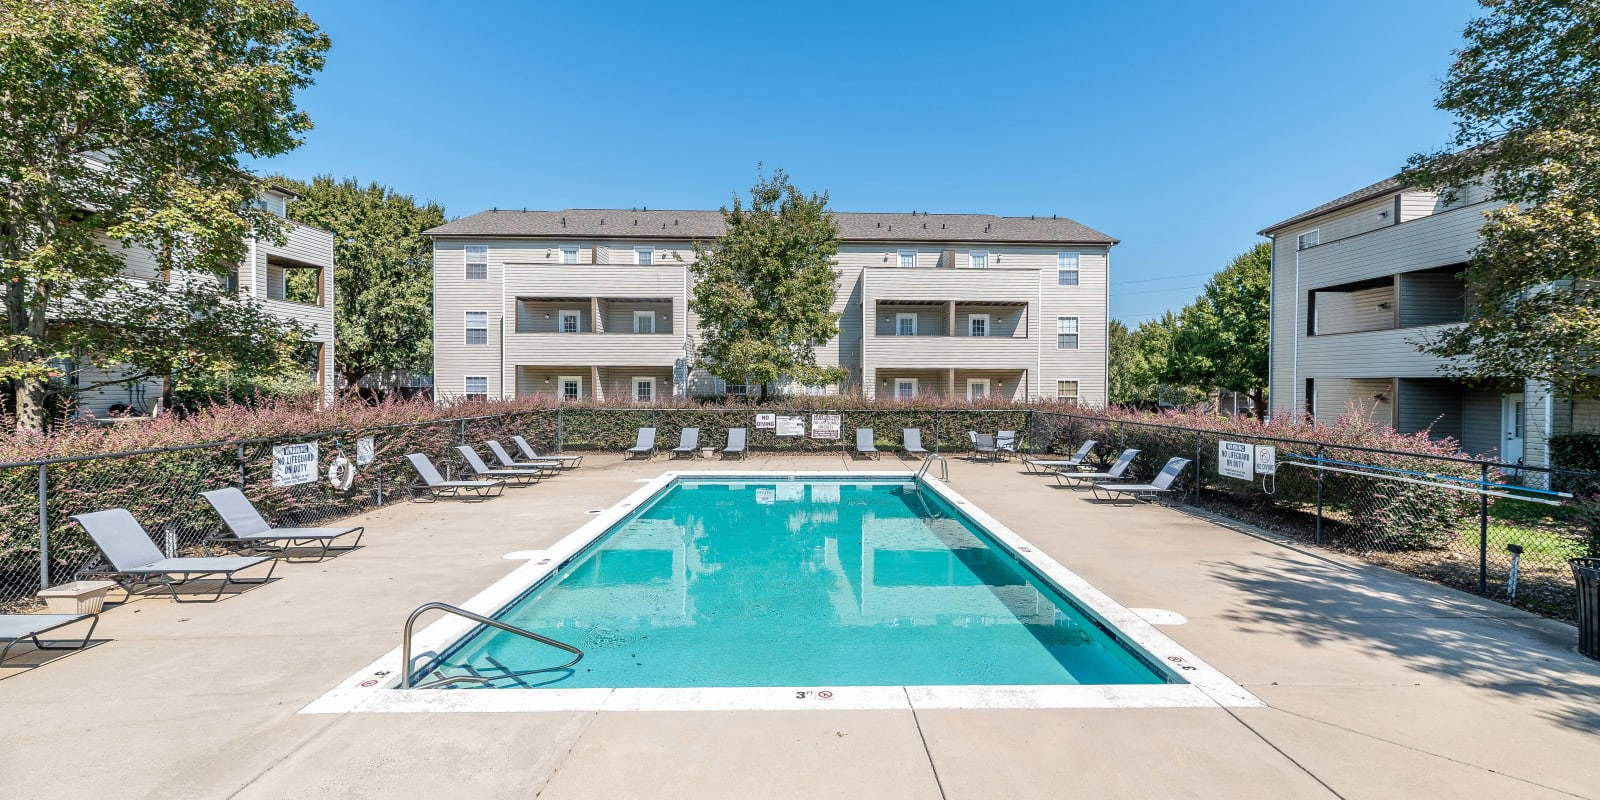 Swimming pool with poolside lounge chairs at The Village at Brierfield Apartment Homes in Charlotte, North Carolina